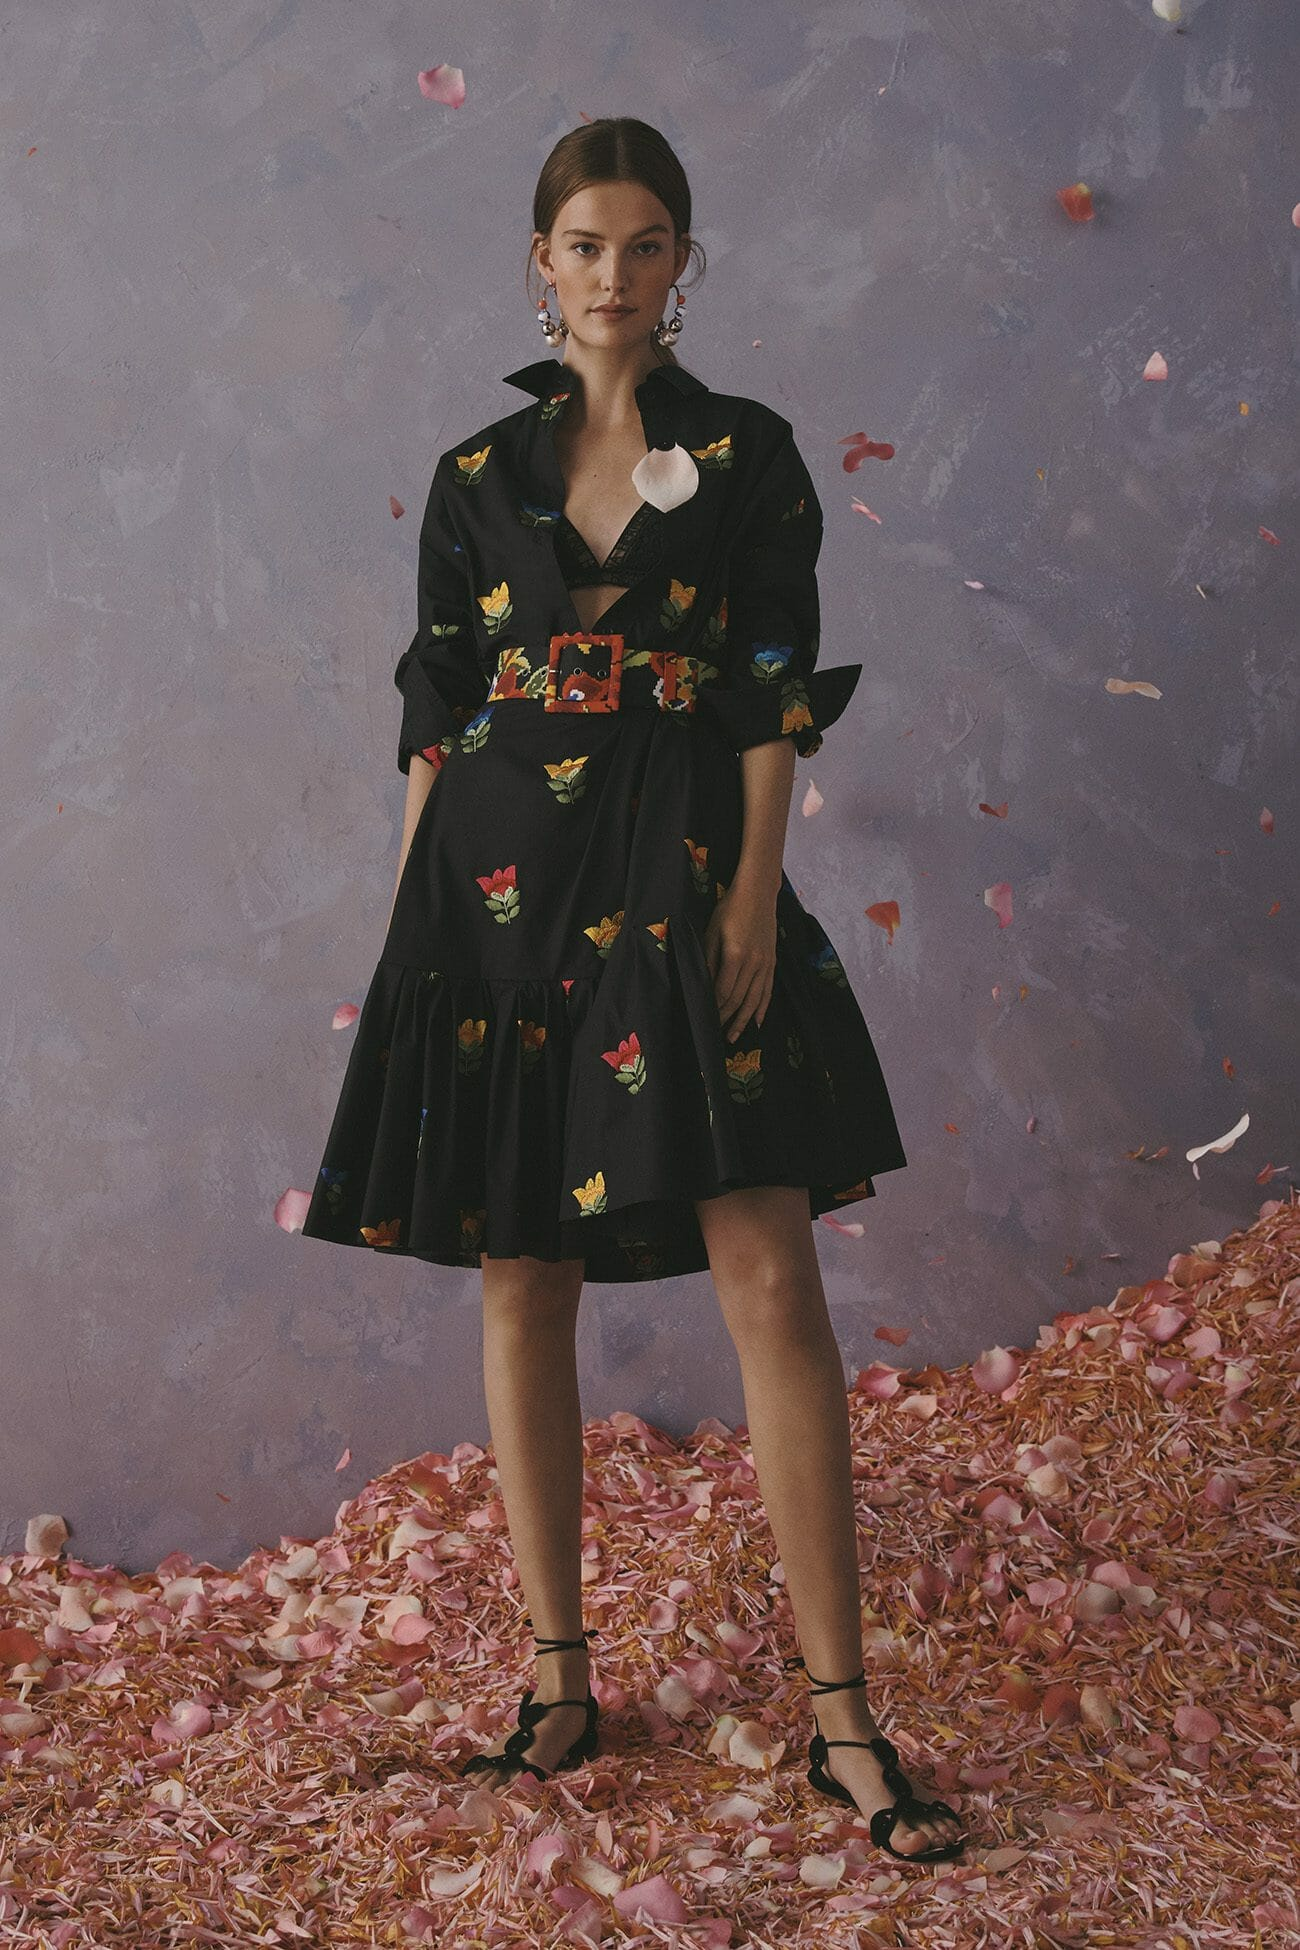 Carolina Herrera New York Resort 2020 Collection black shirt dress with flower belt